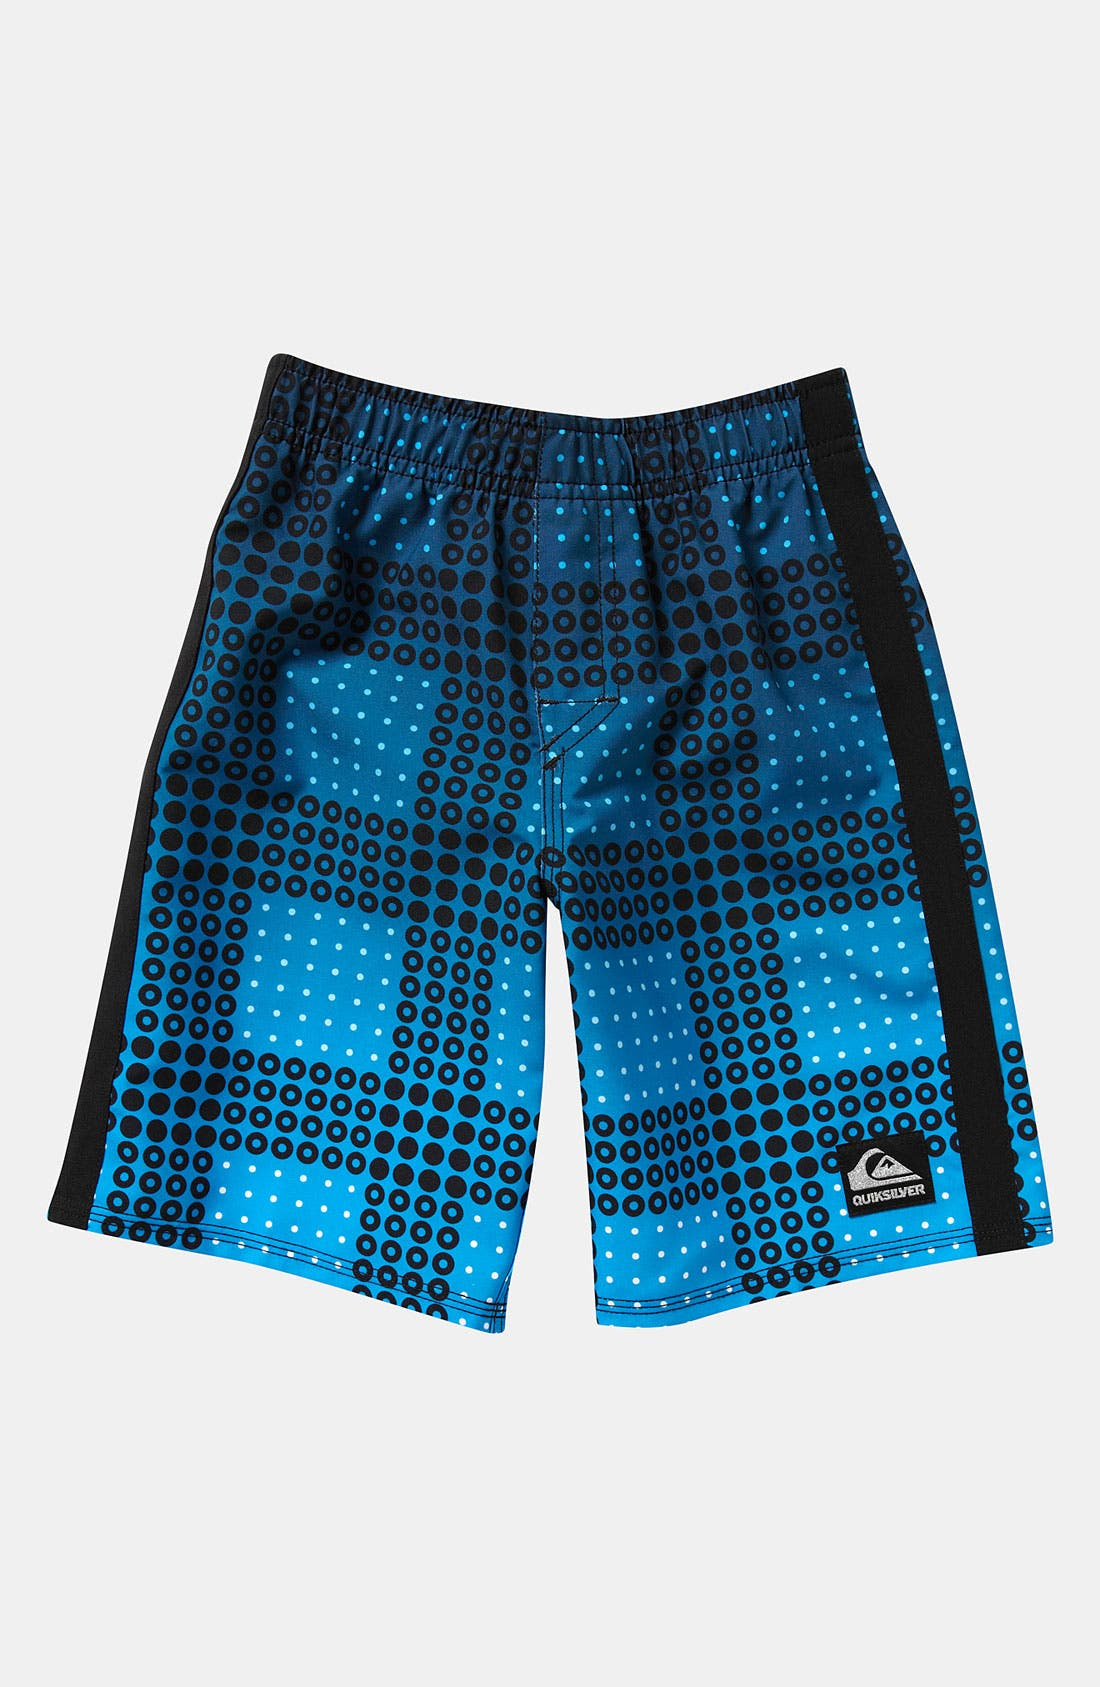 Alternate Image 1 Selected - Quiksilver 'Inverse' Volley Shorts (Big Boys)